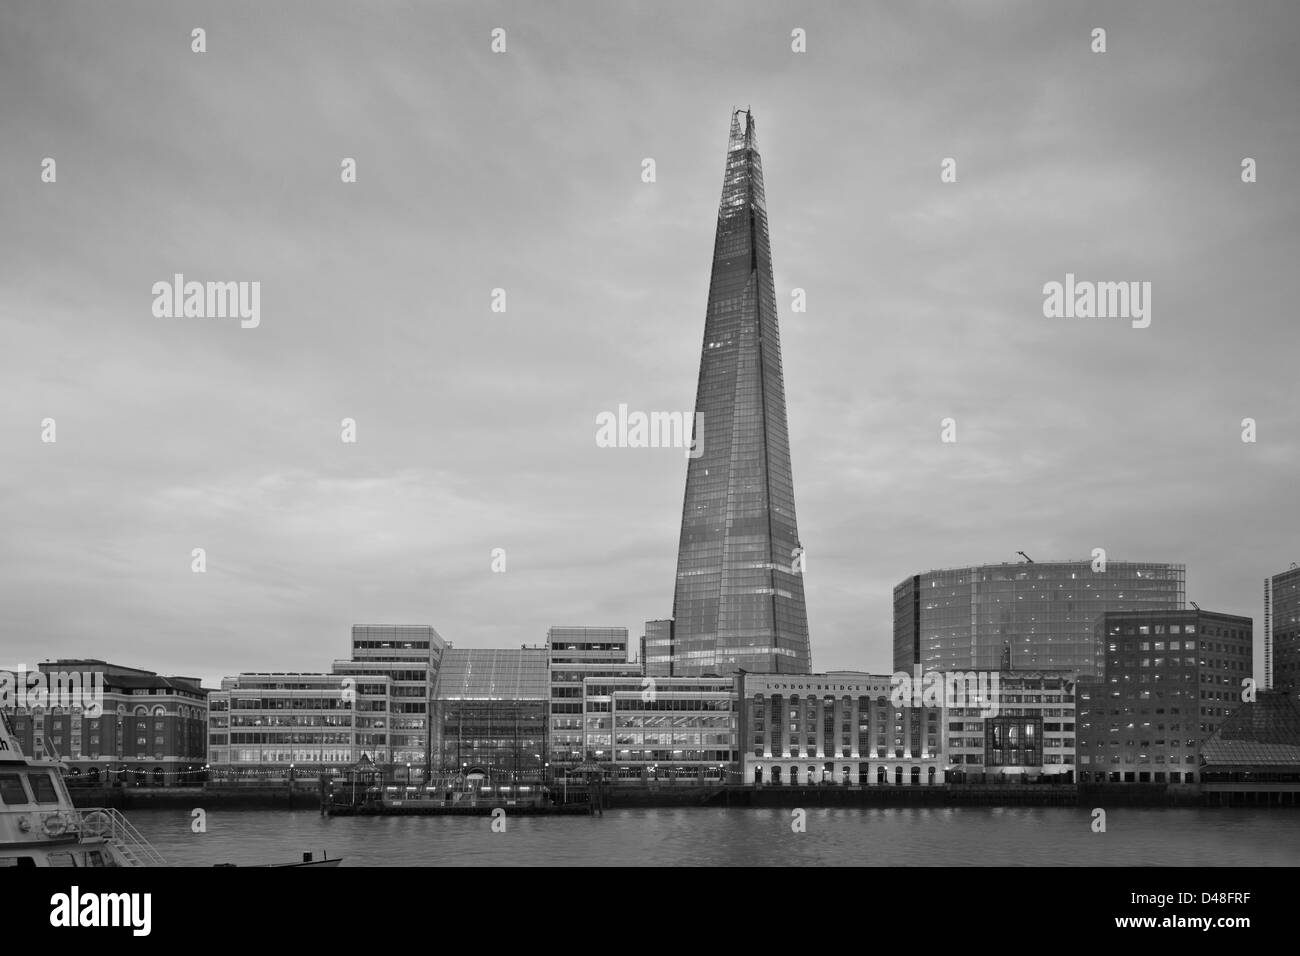 The Shard and River Thames, London, England - Stock Image